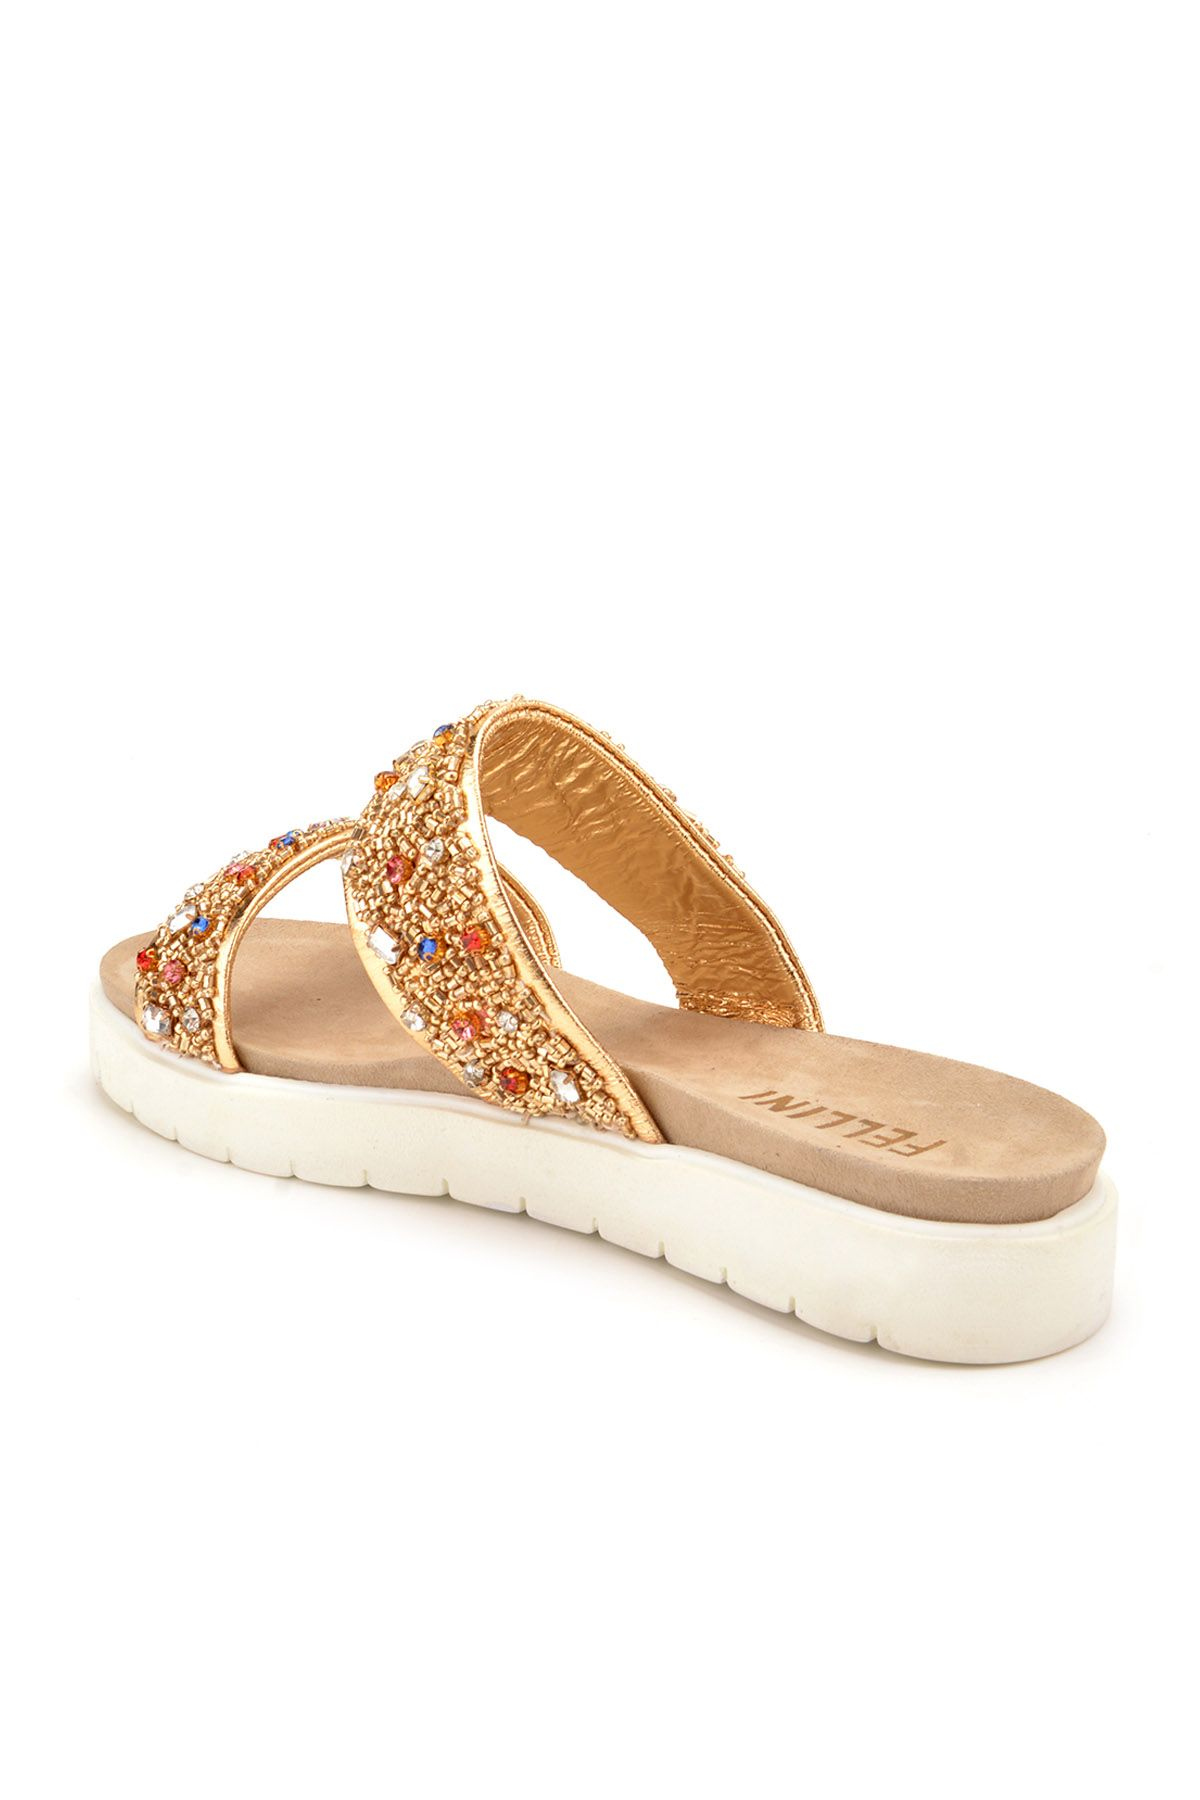 Fln Women Slippers From Genuine Leather Decorated With Stones Golden